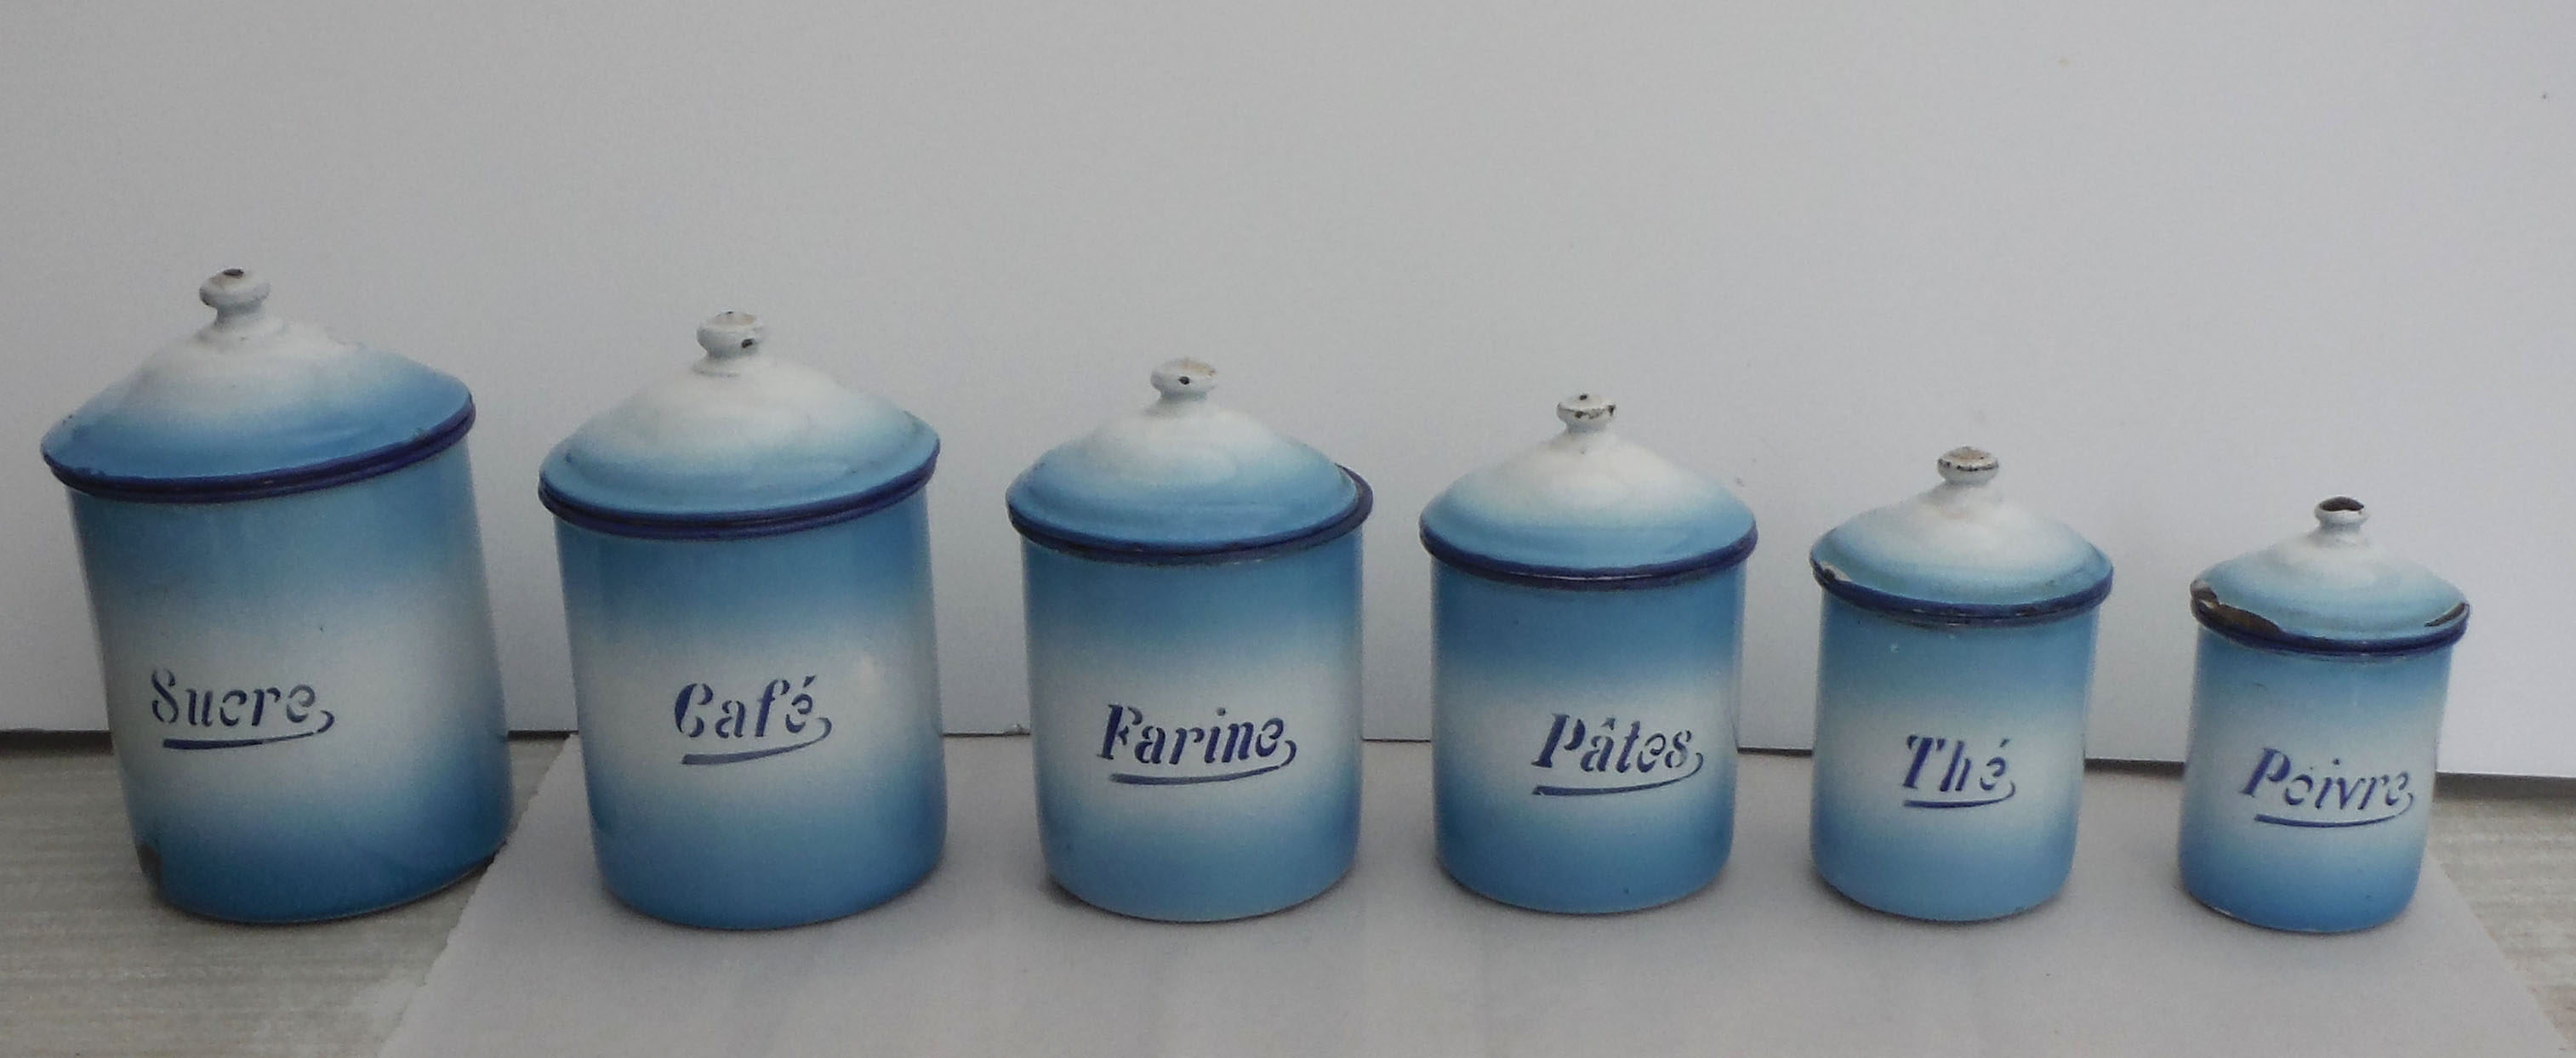 French Kitchen Canisters: French Enamel Kitchen Canisters - Set Of 6